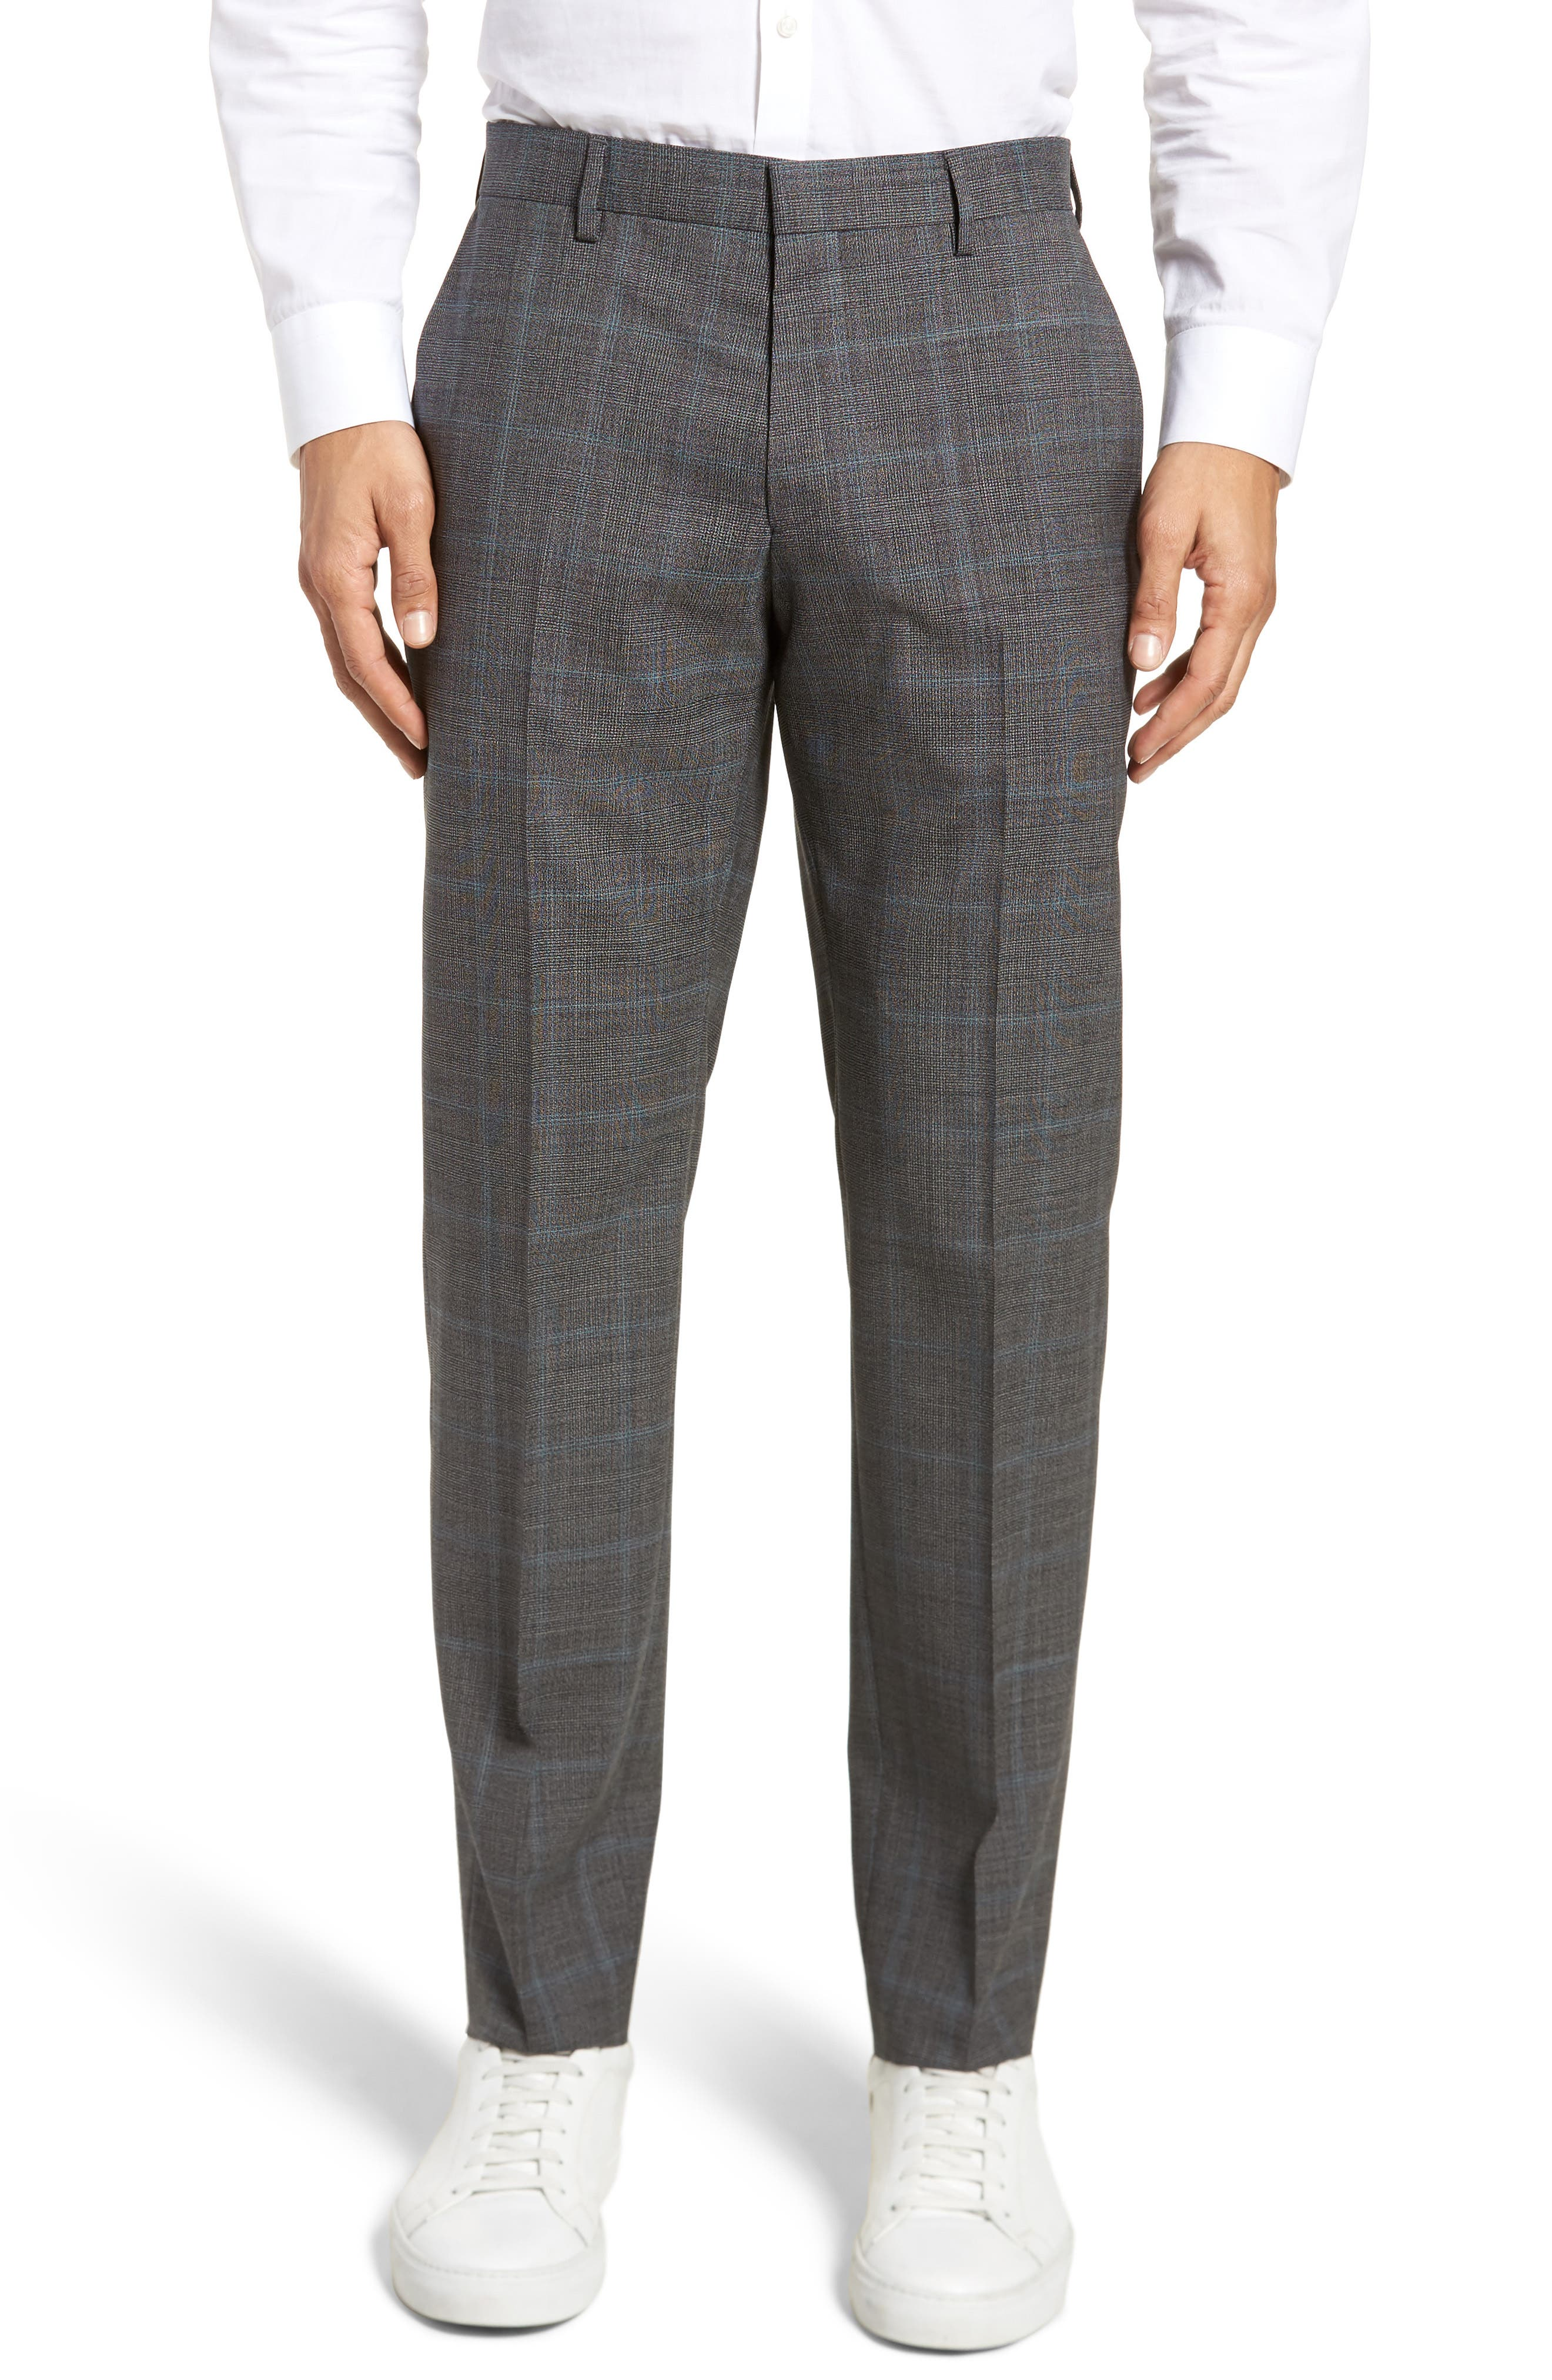 Genesis Flat Front Plaid Wool Trousers,                         Main,                         color, 061